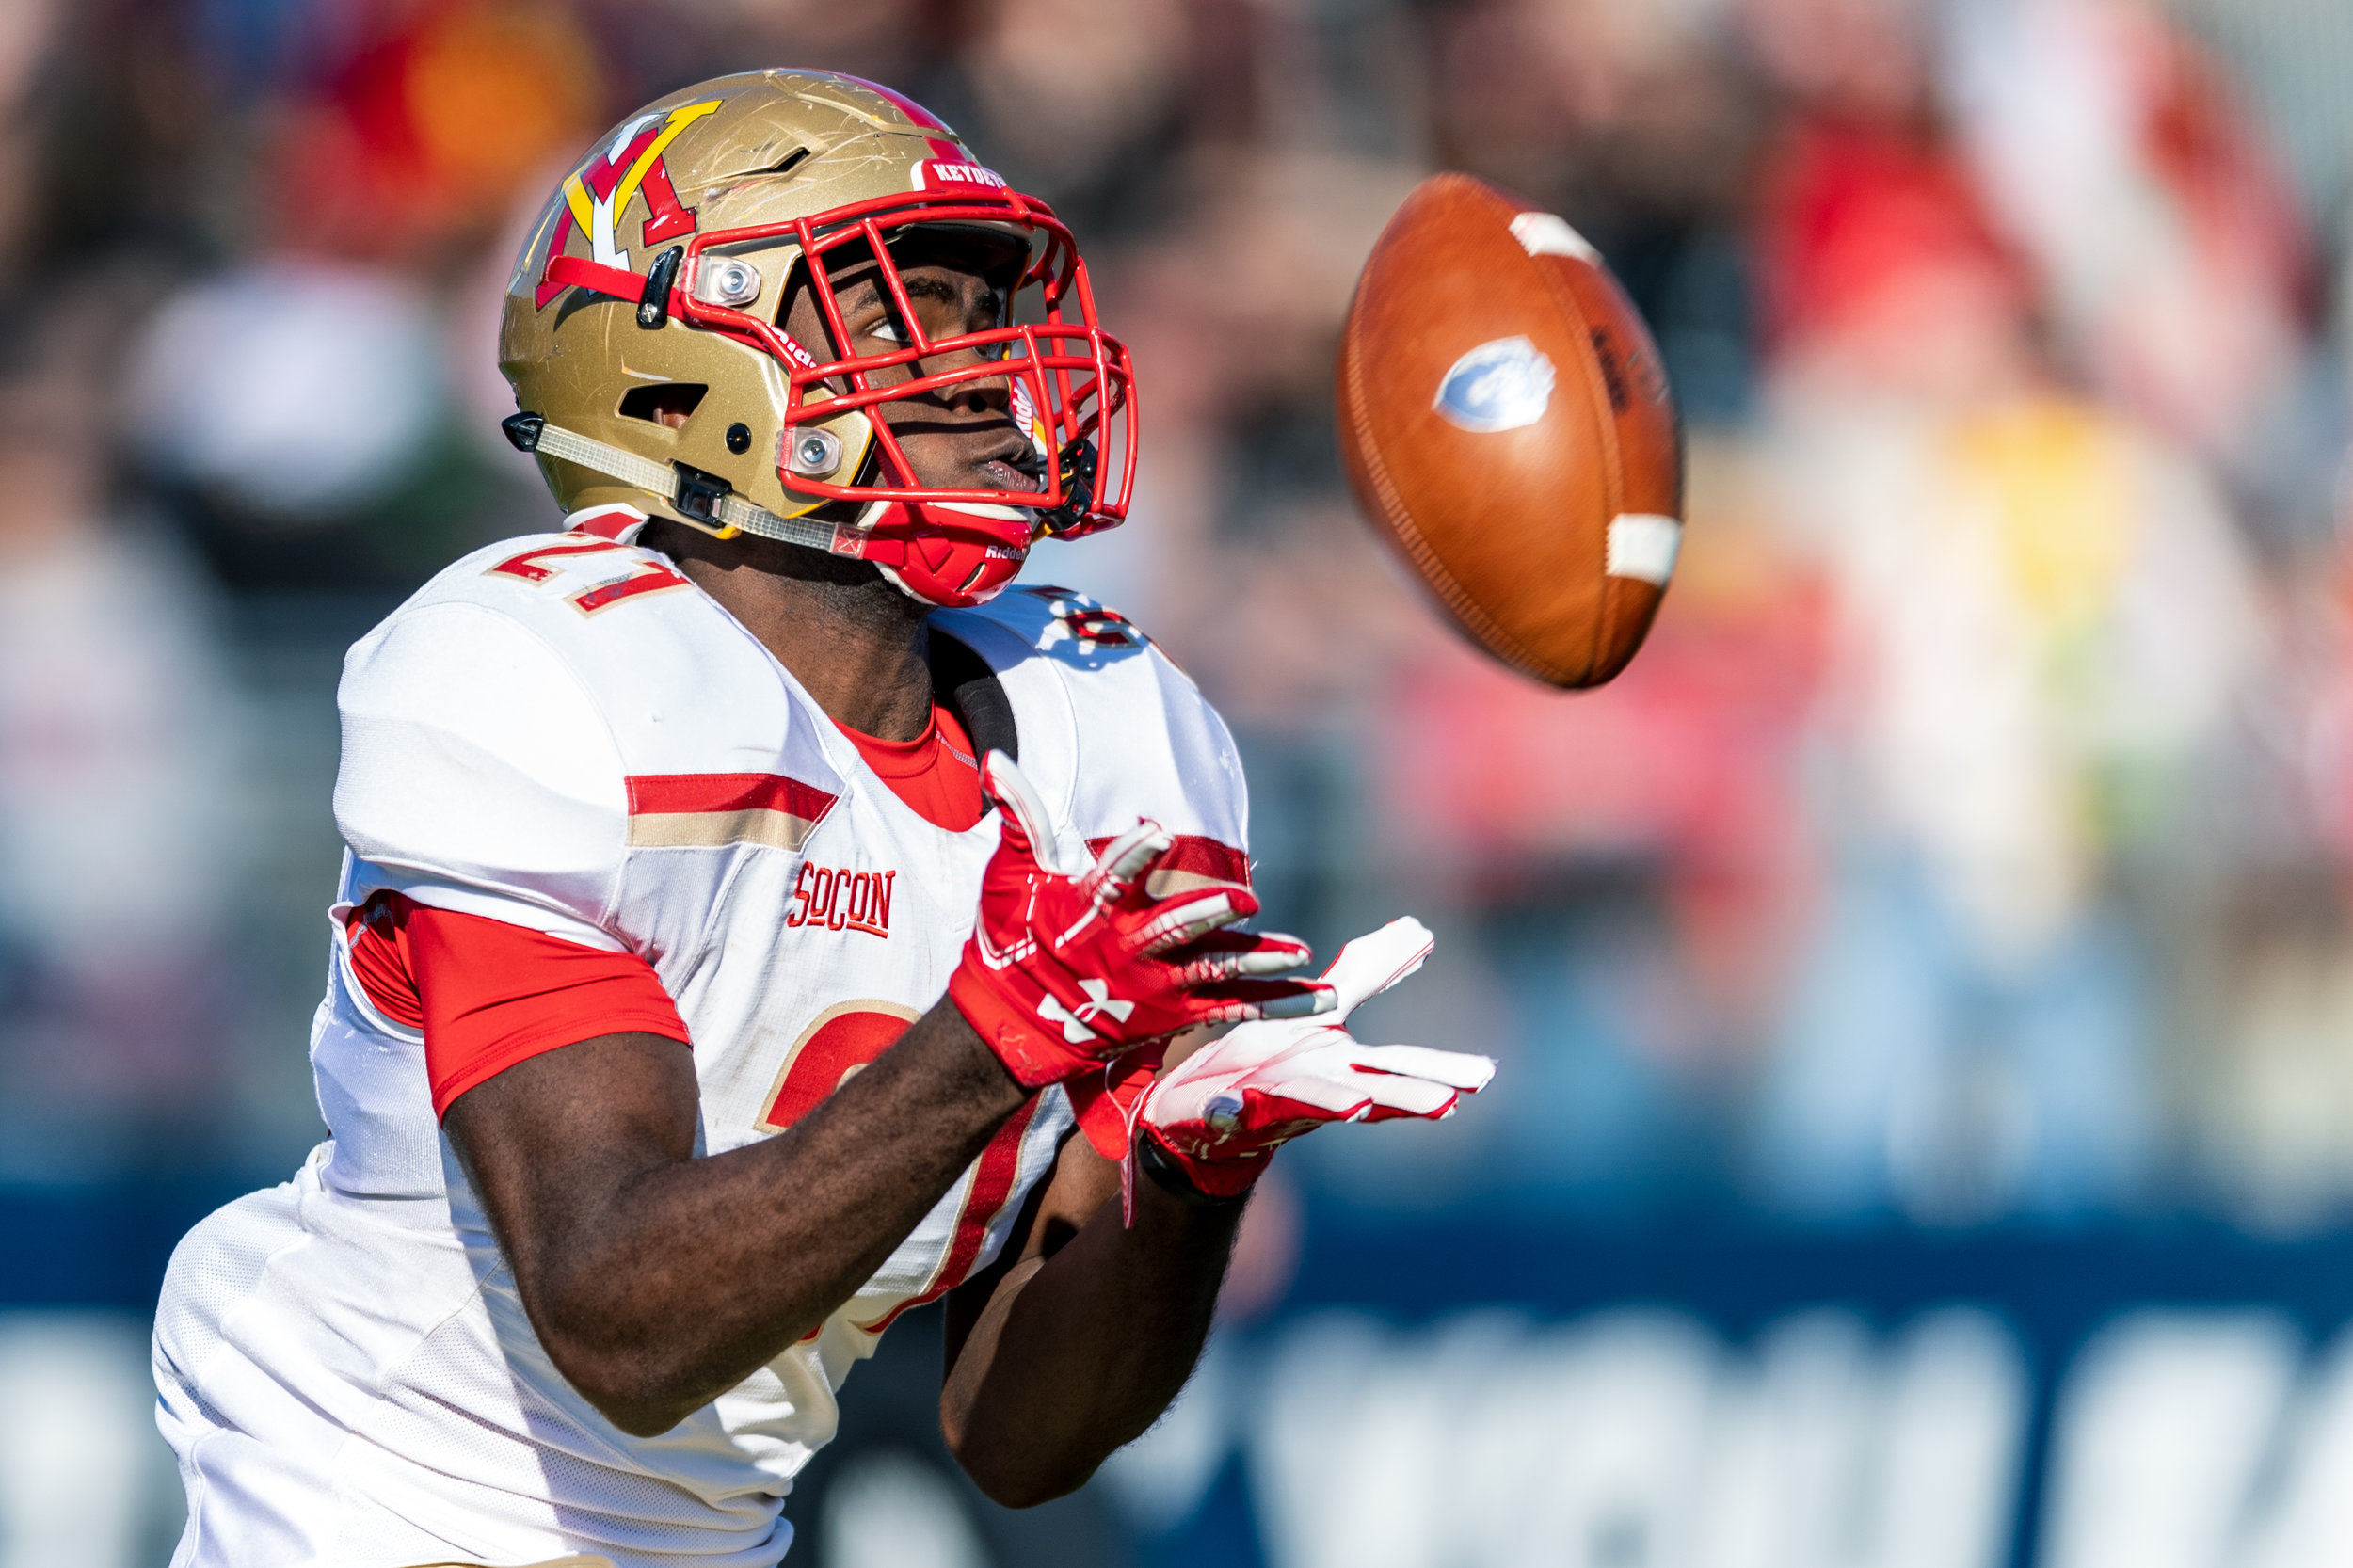 Virginia Military Institute Keydets running back Korey Bridy (21) catches a kickoff during the Saturday, Nov. 17, 2018 game held at Old Dominion University in Norfolk, Virginia. Old Dominion leads VMI 49 to 0 at halftime.